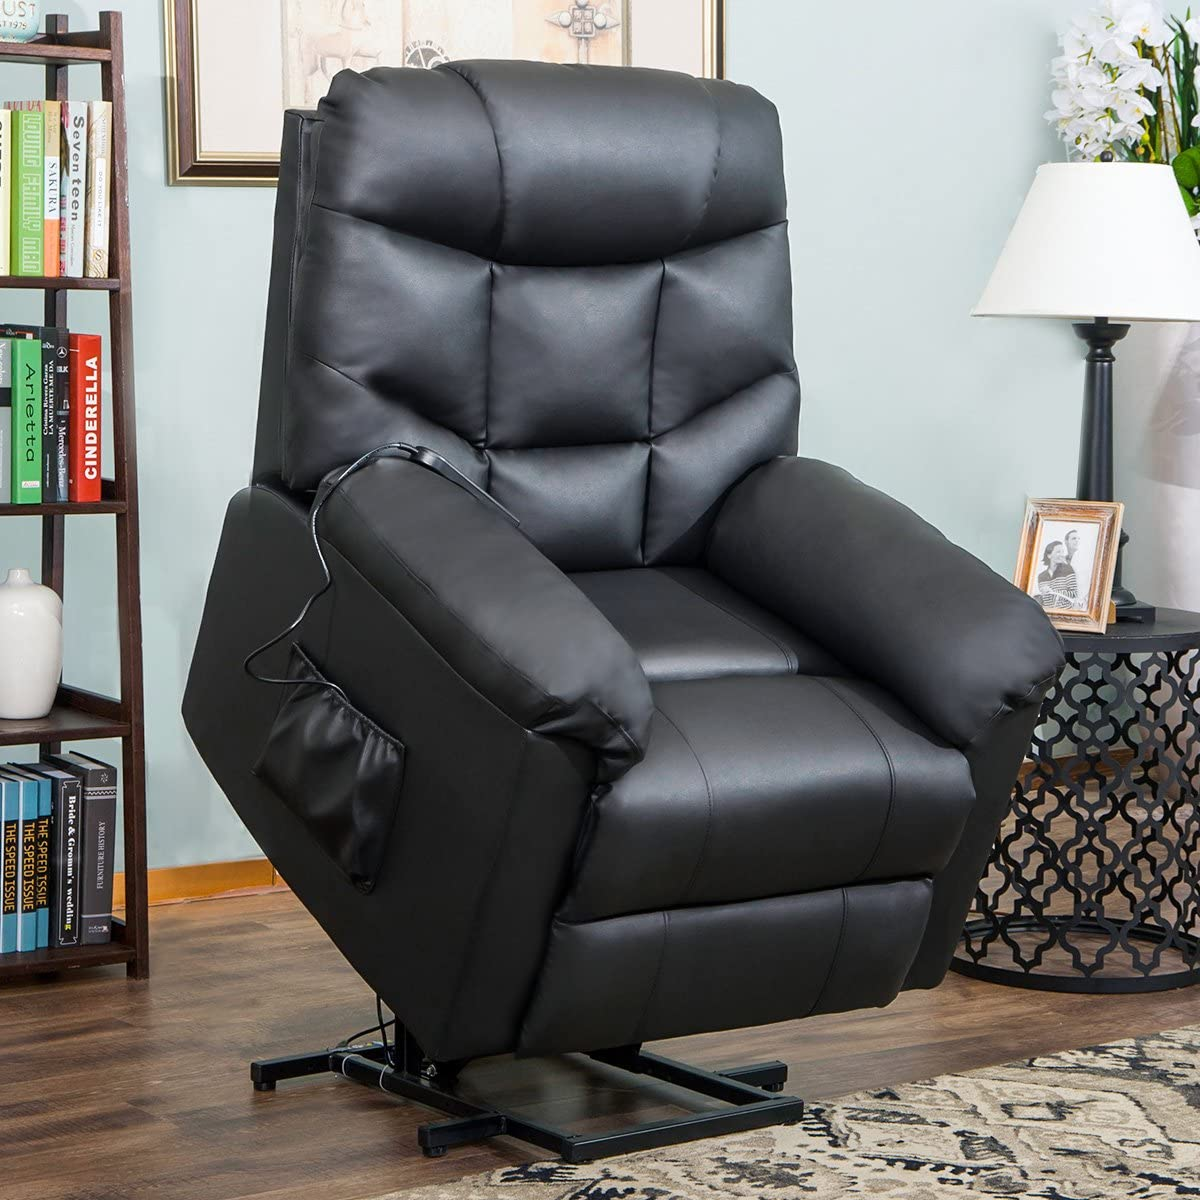 Lift Chairs for Elderly , Reclining Chair Sofa Electric Recliner Chairs with Remote Control Soft PU Lounge